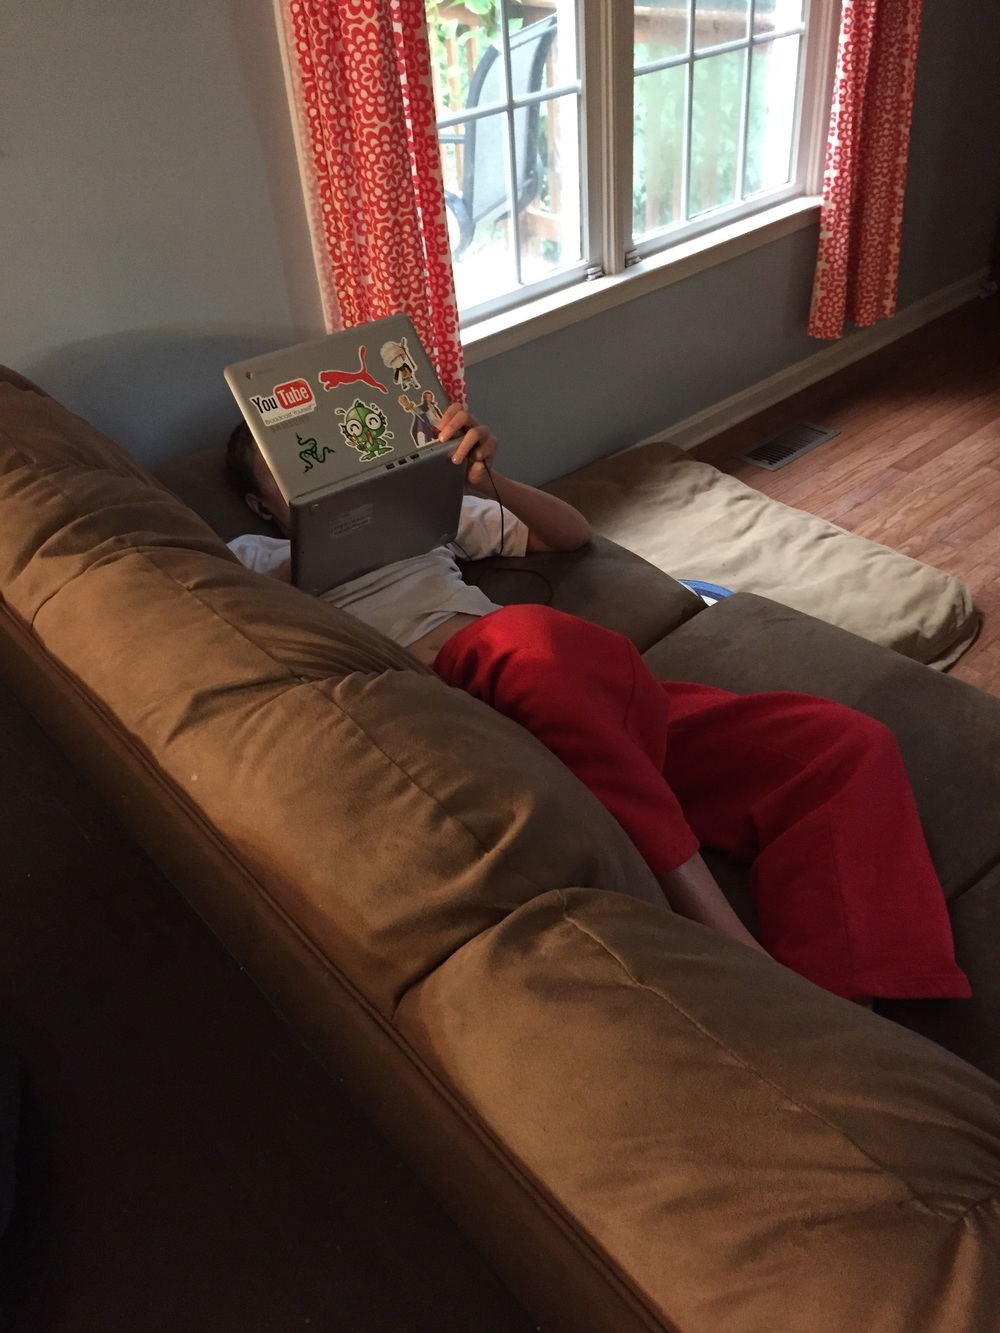 Cameron - working on school, on the couch, in his PJ's! 8th grade isn't so bad.